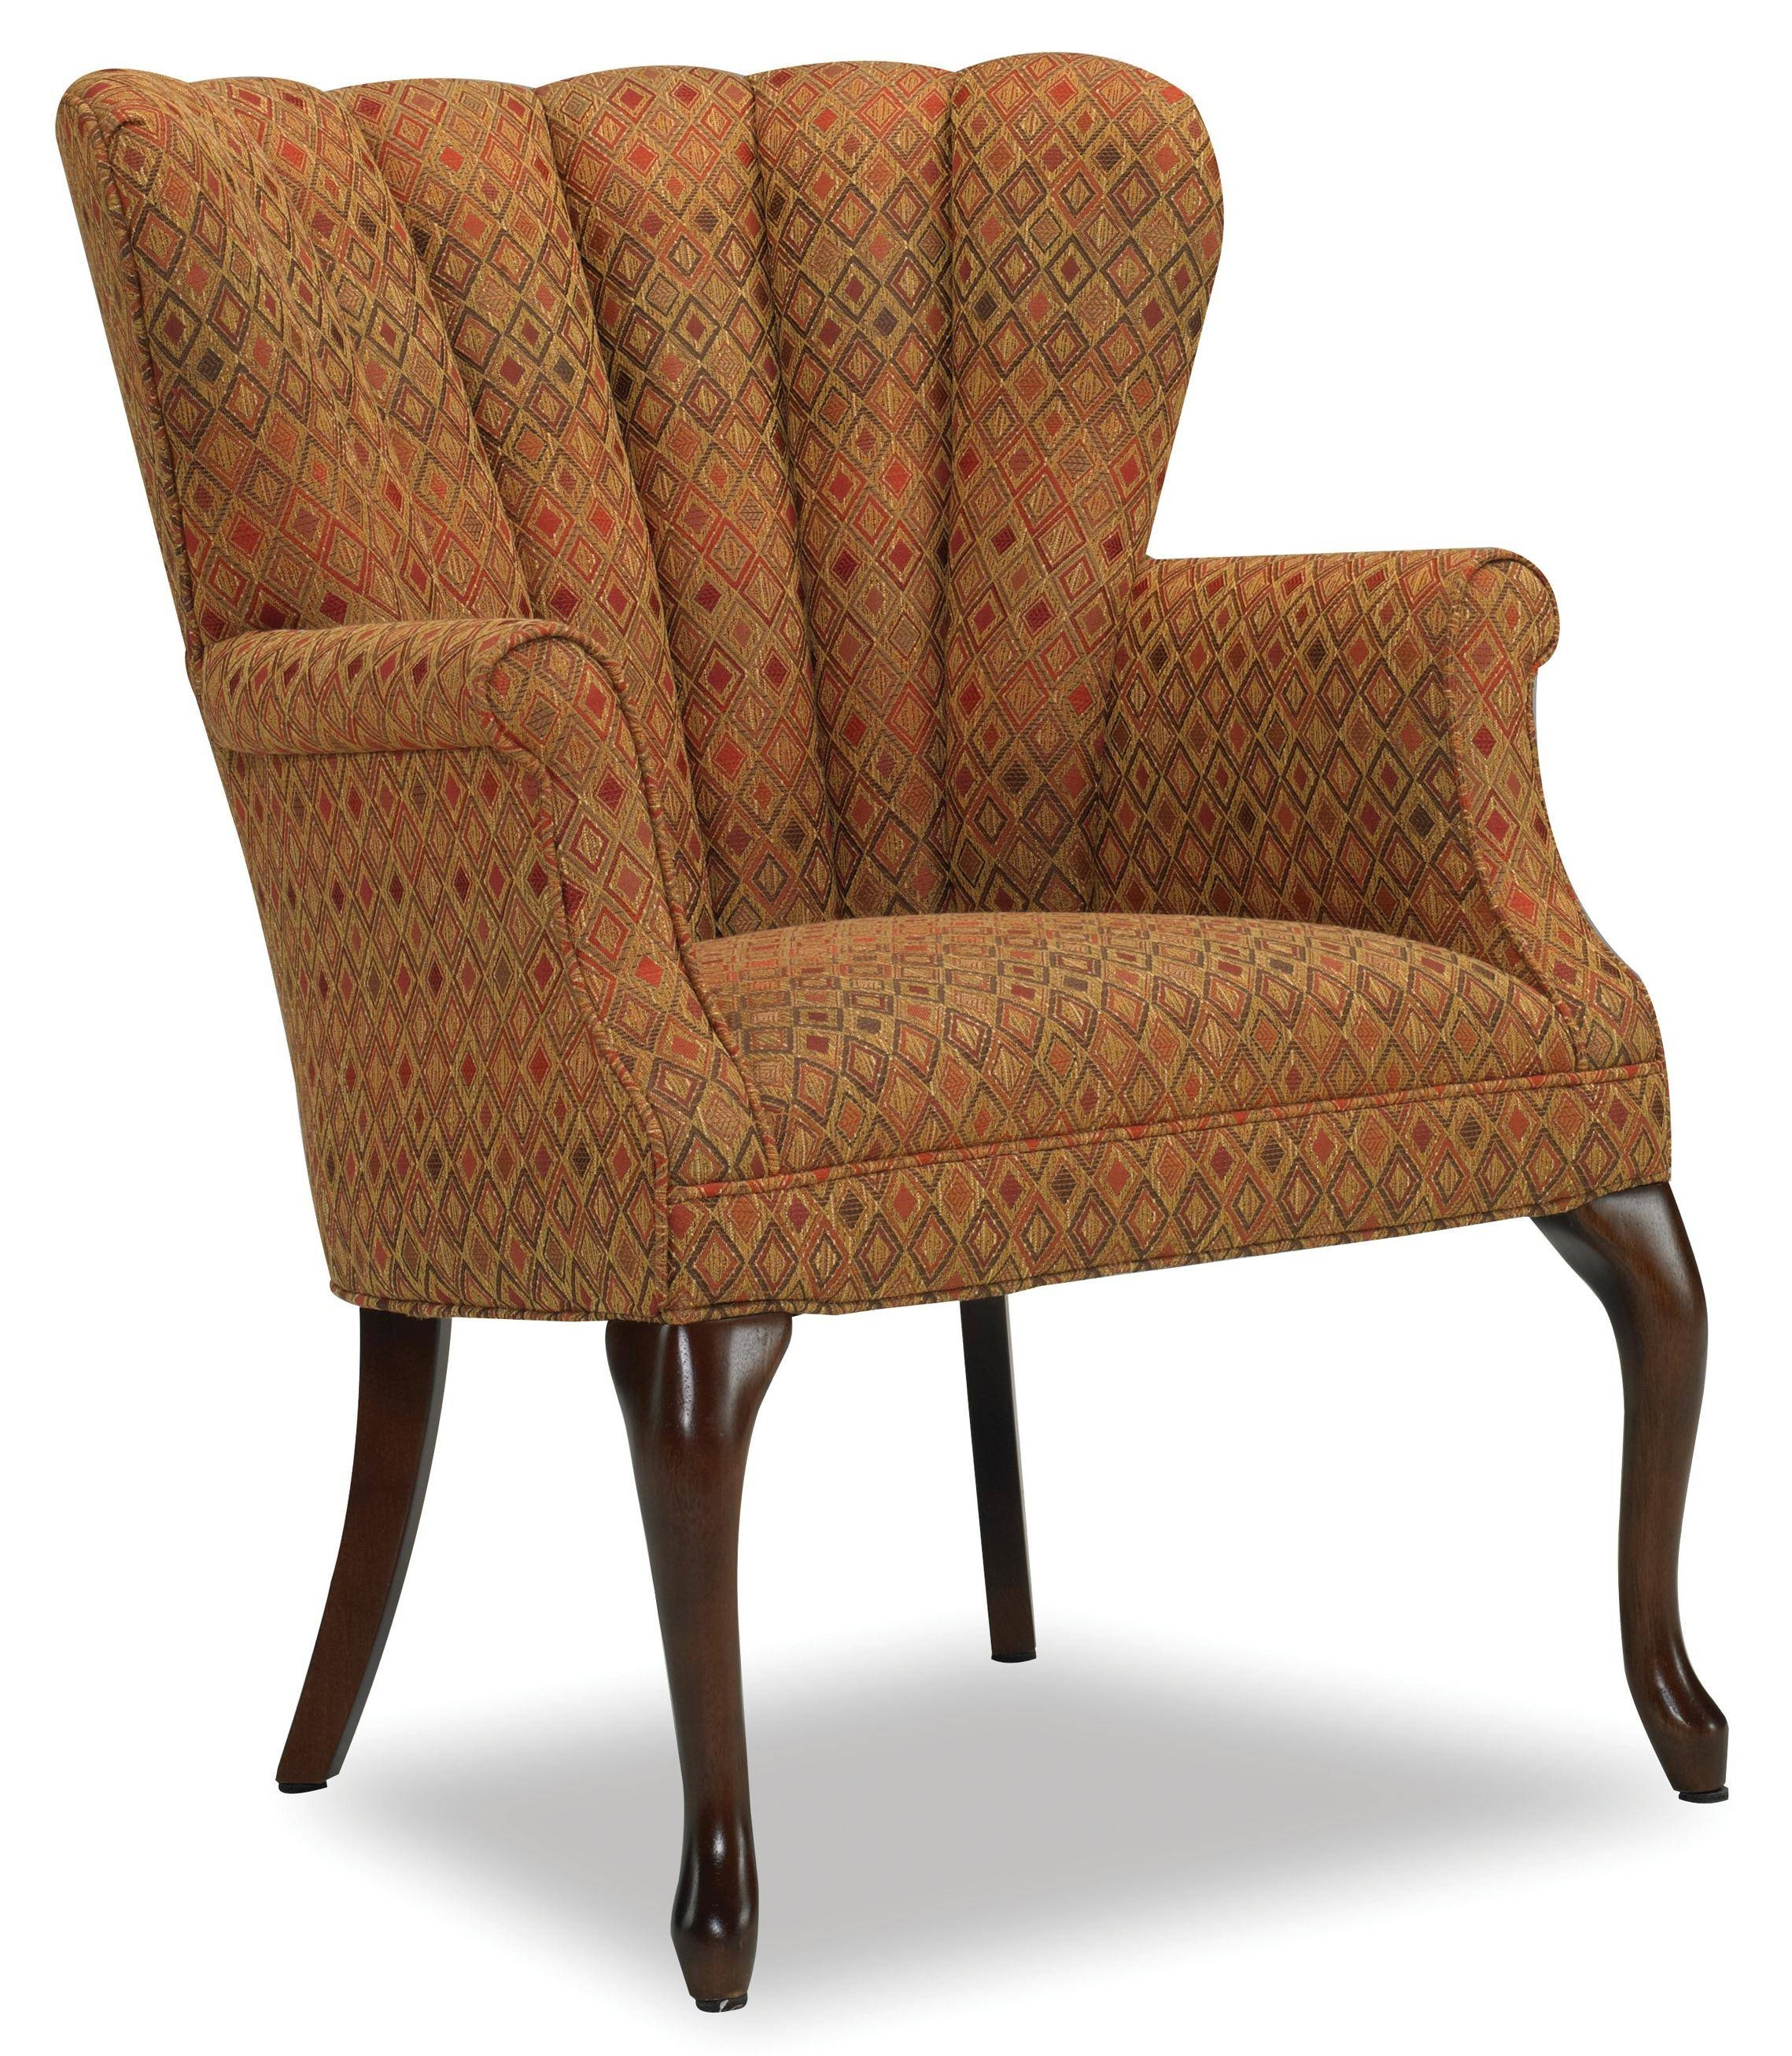 Sam Moore Annabelle Traditional Queen Anne Barrel Chair With Pertaining To Sam Moore Sofas (View 11 of 15)